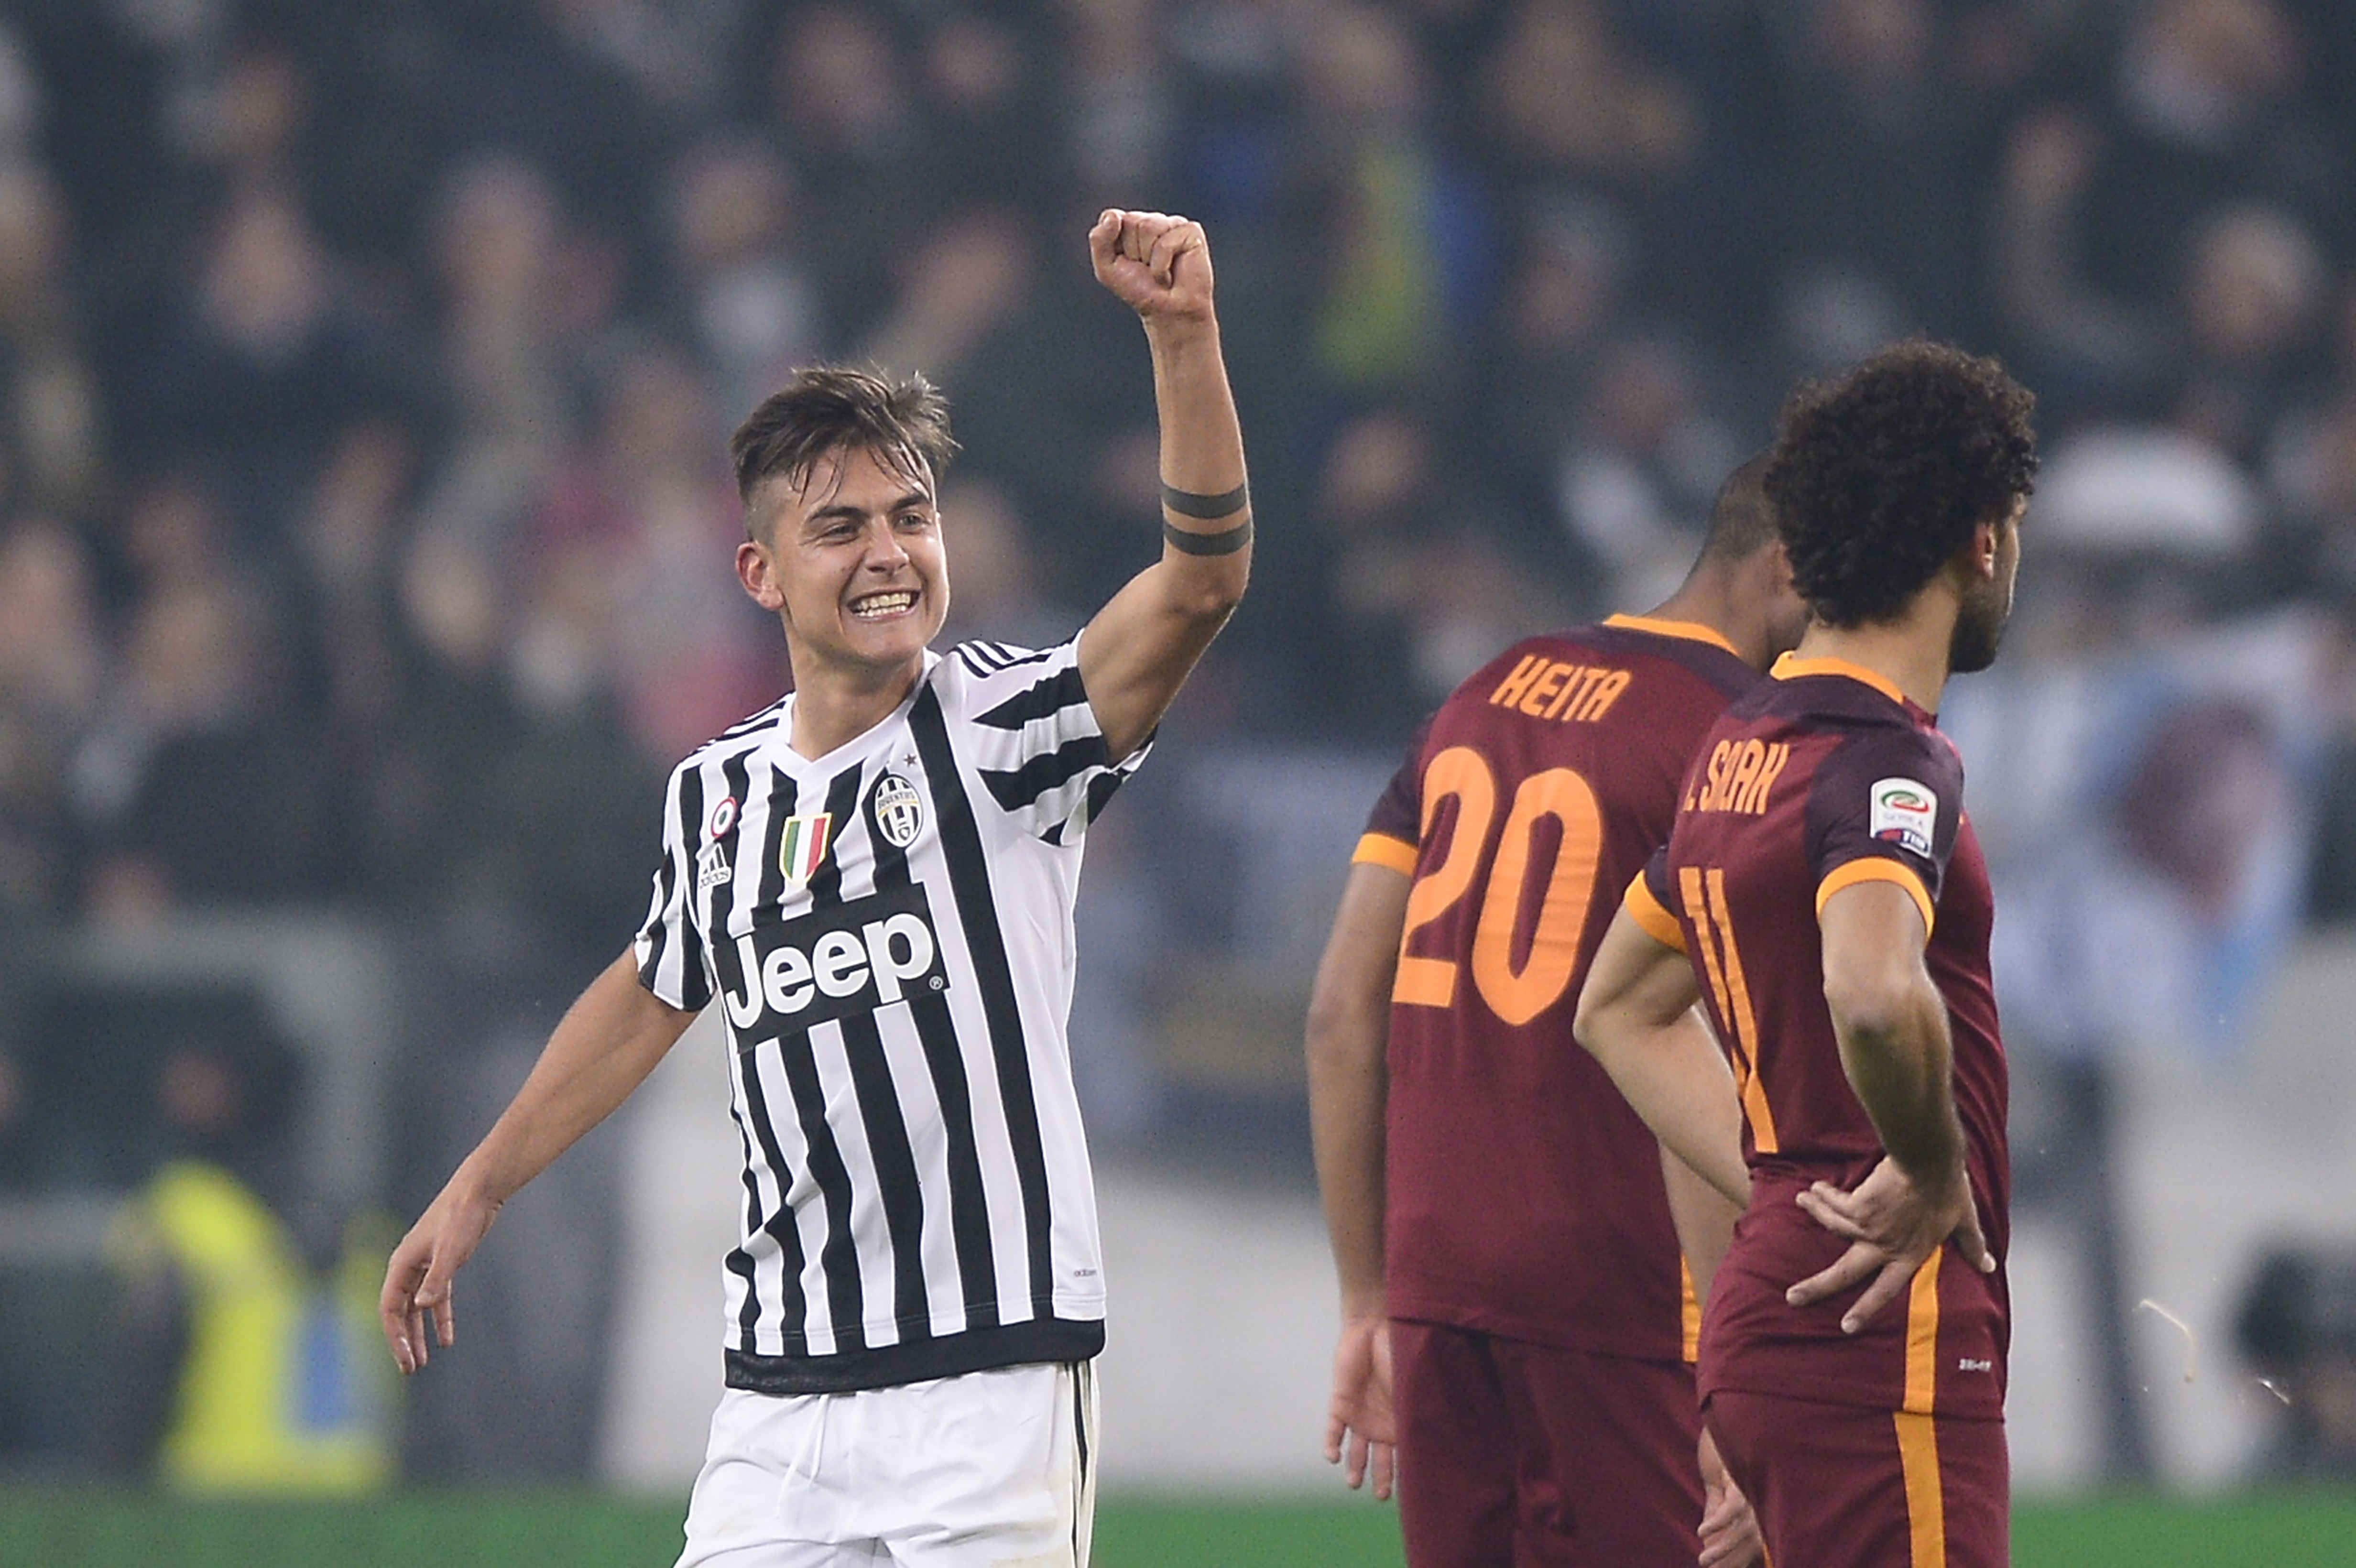 "Foto LaPresse - Fabio Ferrari 24/01/2016 Torino ( Italia) Sport Calcio Juventus Fc - Roma Campionato di Calcio Serie A TIM 2015 2016 - Stadio ""Juventus Stadium"" Nella foto: Dybala Paulo Exequiel (Juventus F.C.); esulta dopo rete Photo LaPresse - Fabio Ferrari 24 January 2016 Turin ( Italy) Sport Soccer Juventus Fc - Roma Italian Football Championship League A TIM 2015 2016 - ""Juventus Stadium"" Stadium In the pic: Dybala Paulo Exequiel (Juventus F.C.); celebrates"